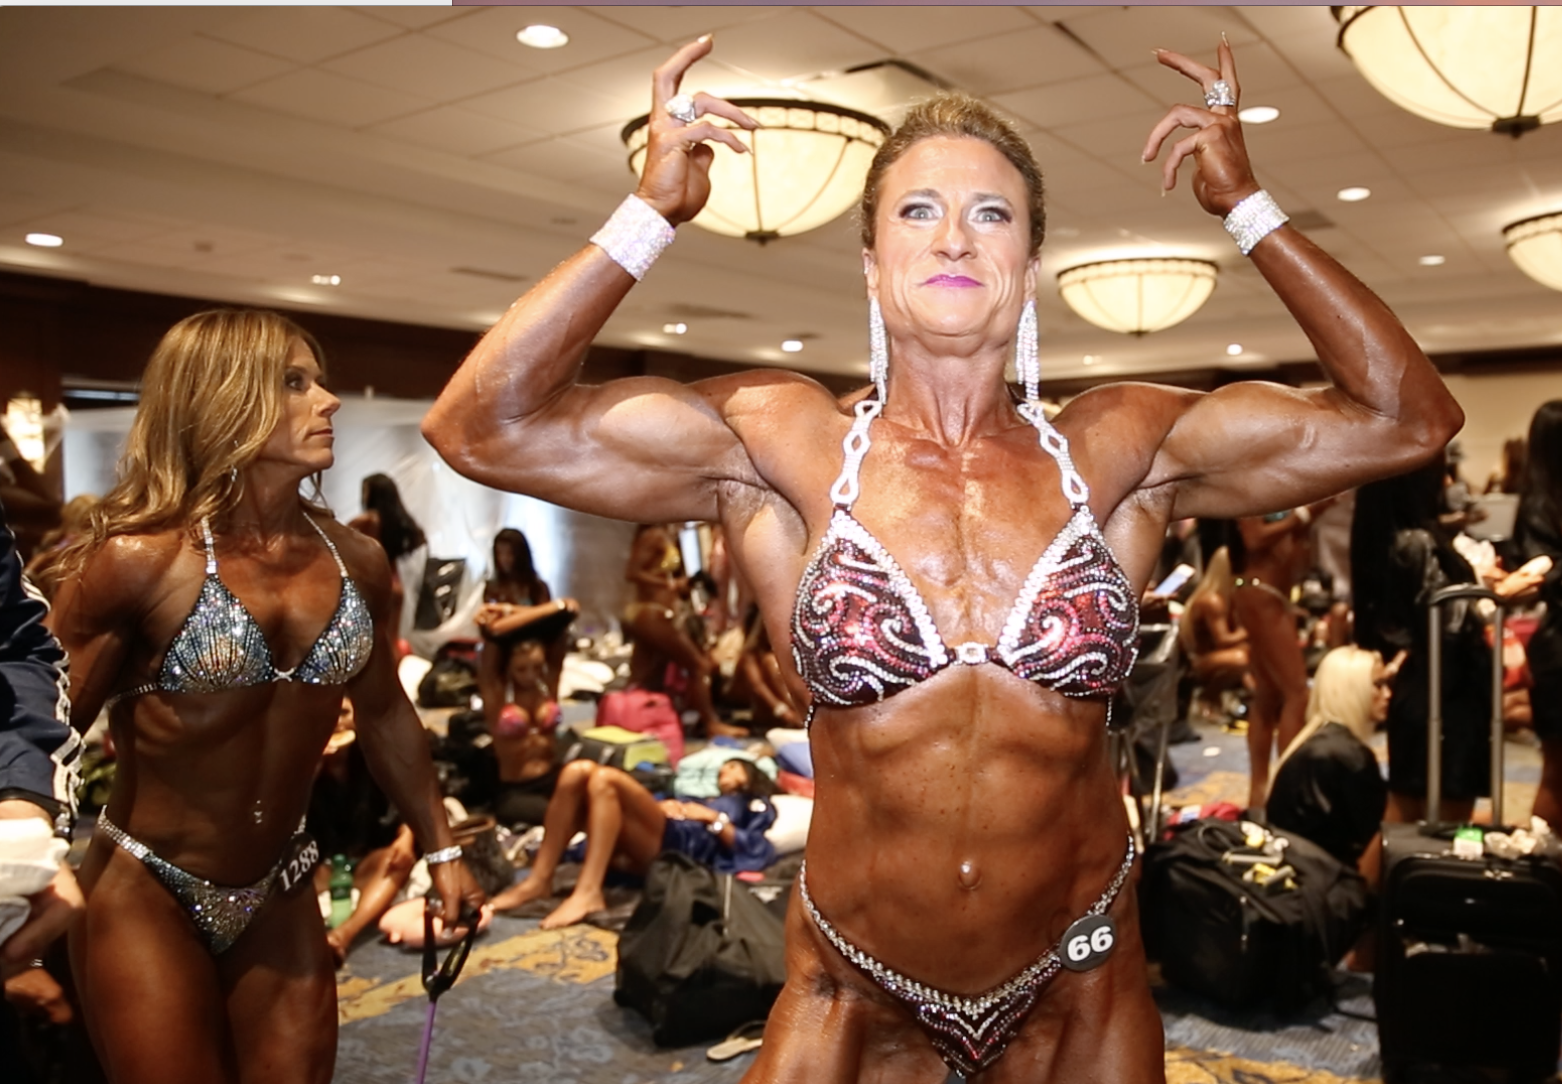 2017 IFBB PITTSBURGH MASTERS PRO WOMEN'S PHYSIQUE BACKSTAGE VIDEO